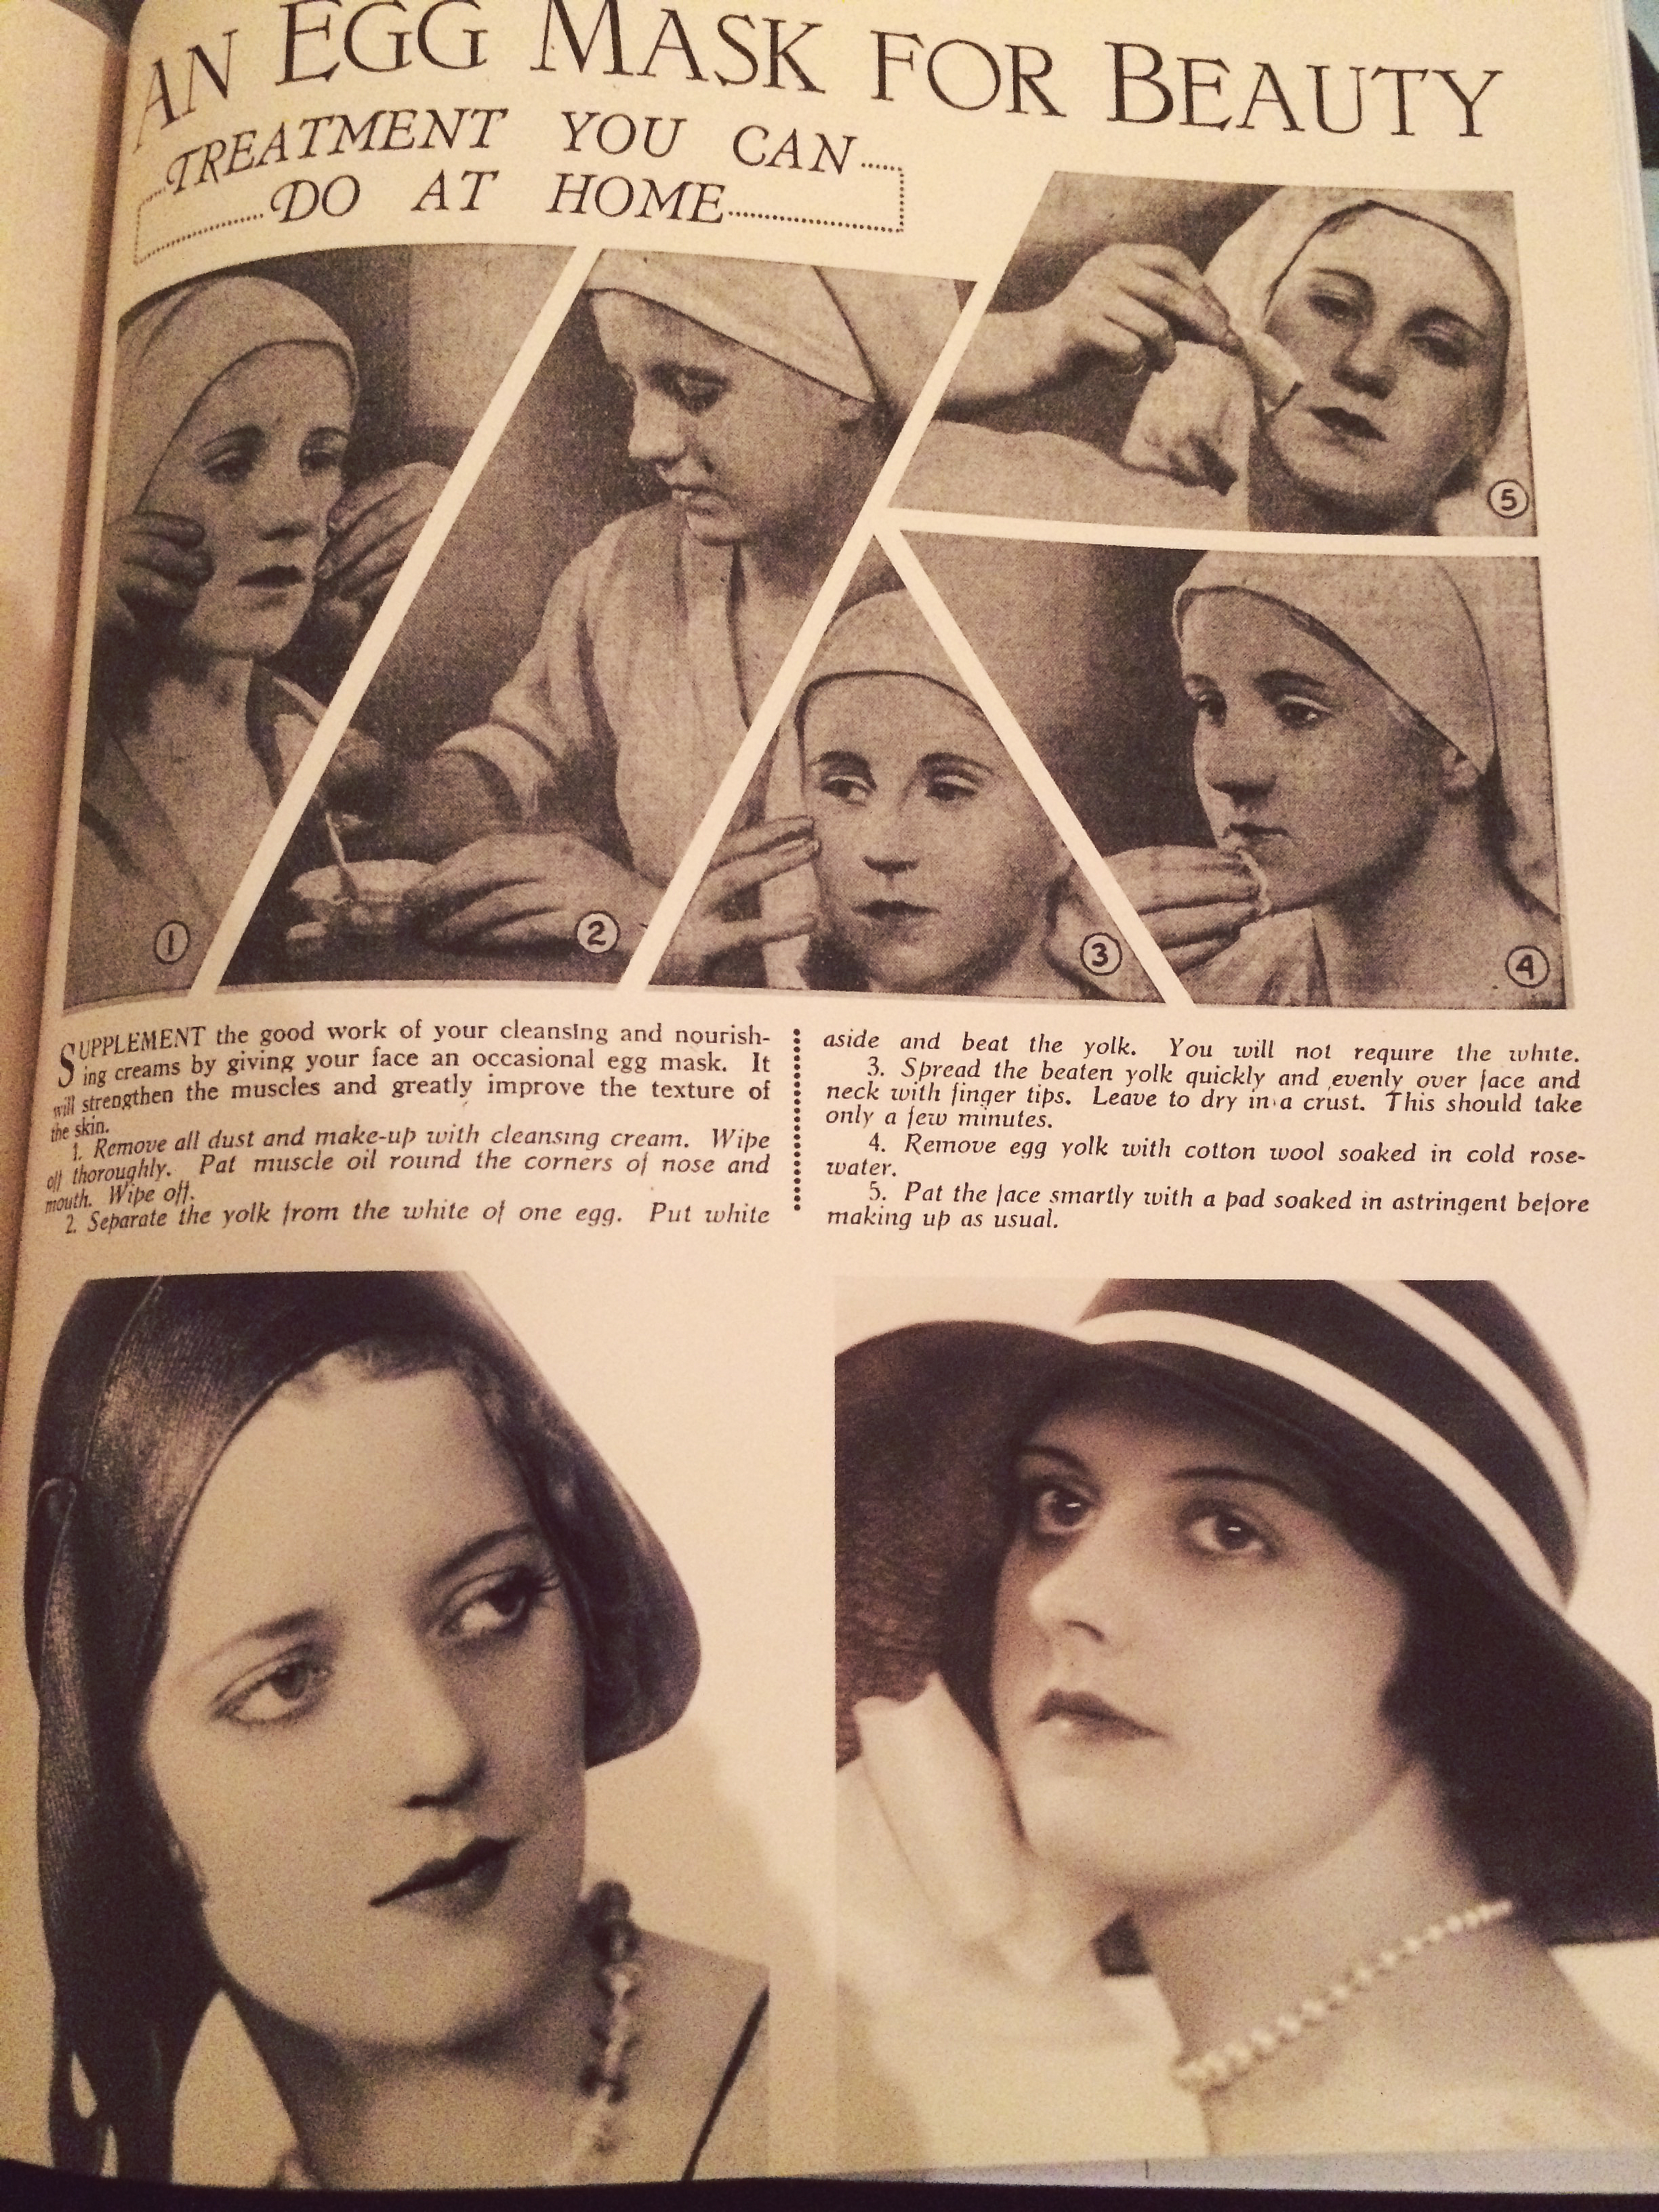 1930s beauty tips